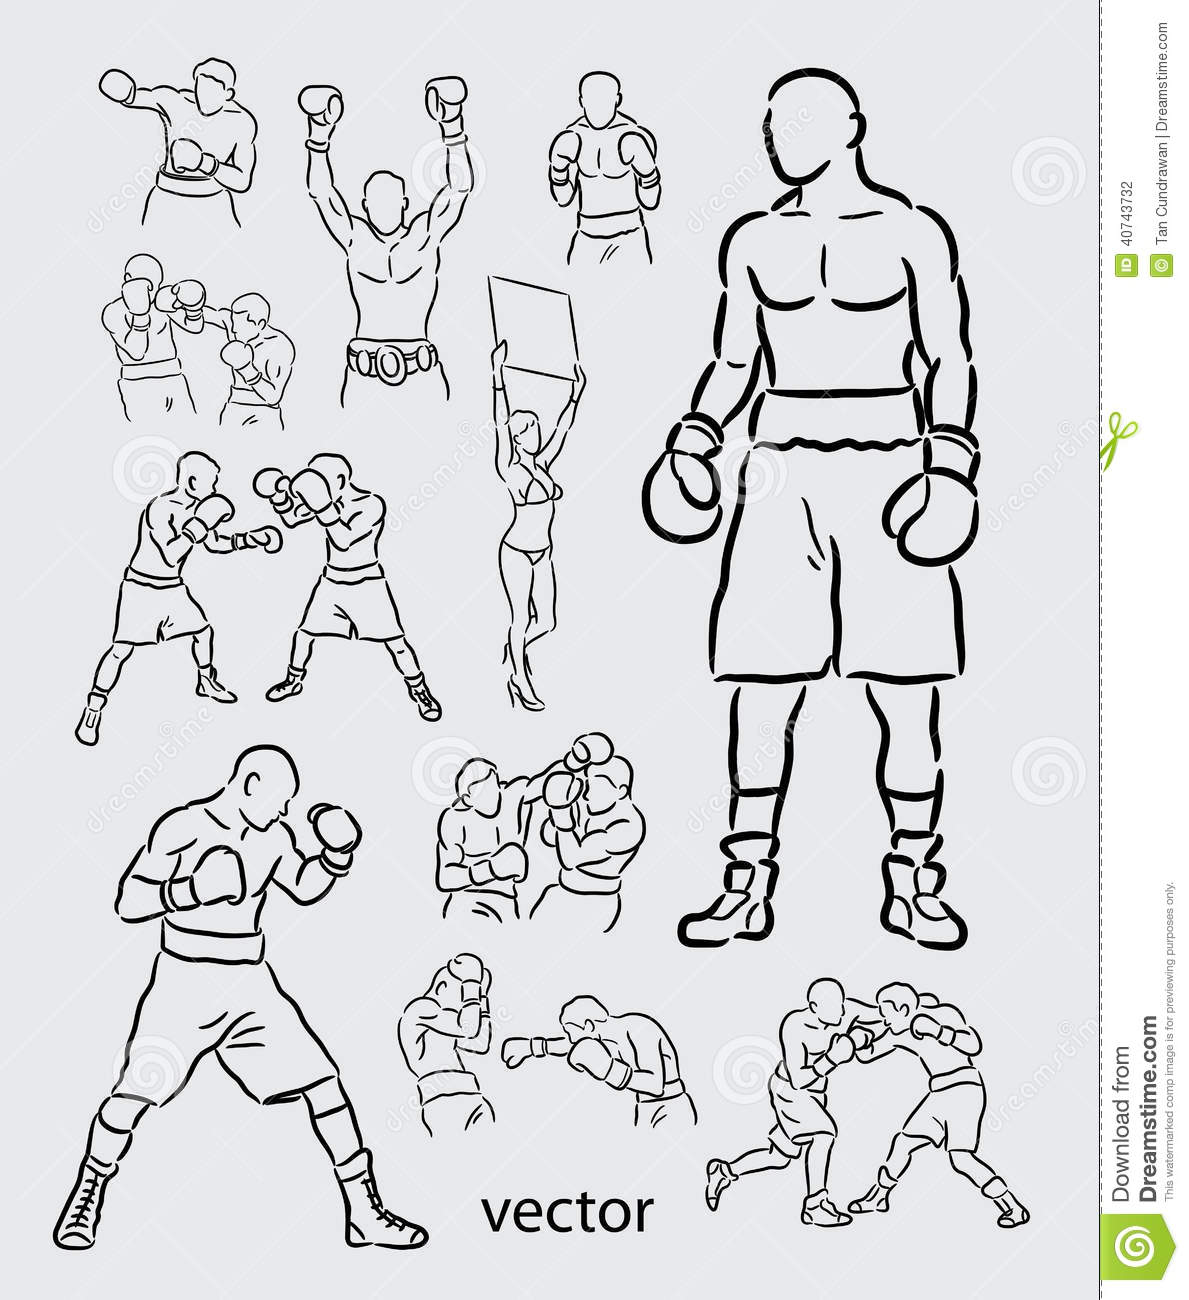 Sport Drawing Good Use For Your Logo Symbol Or Event Design